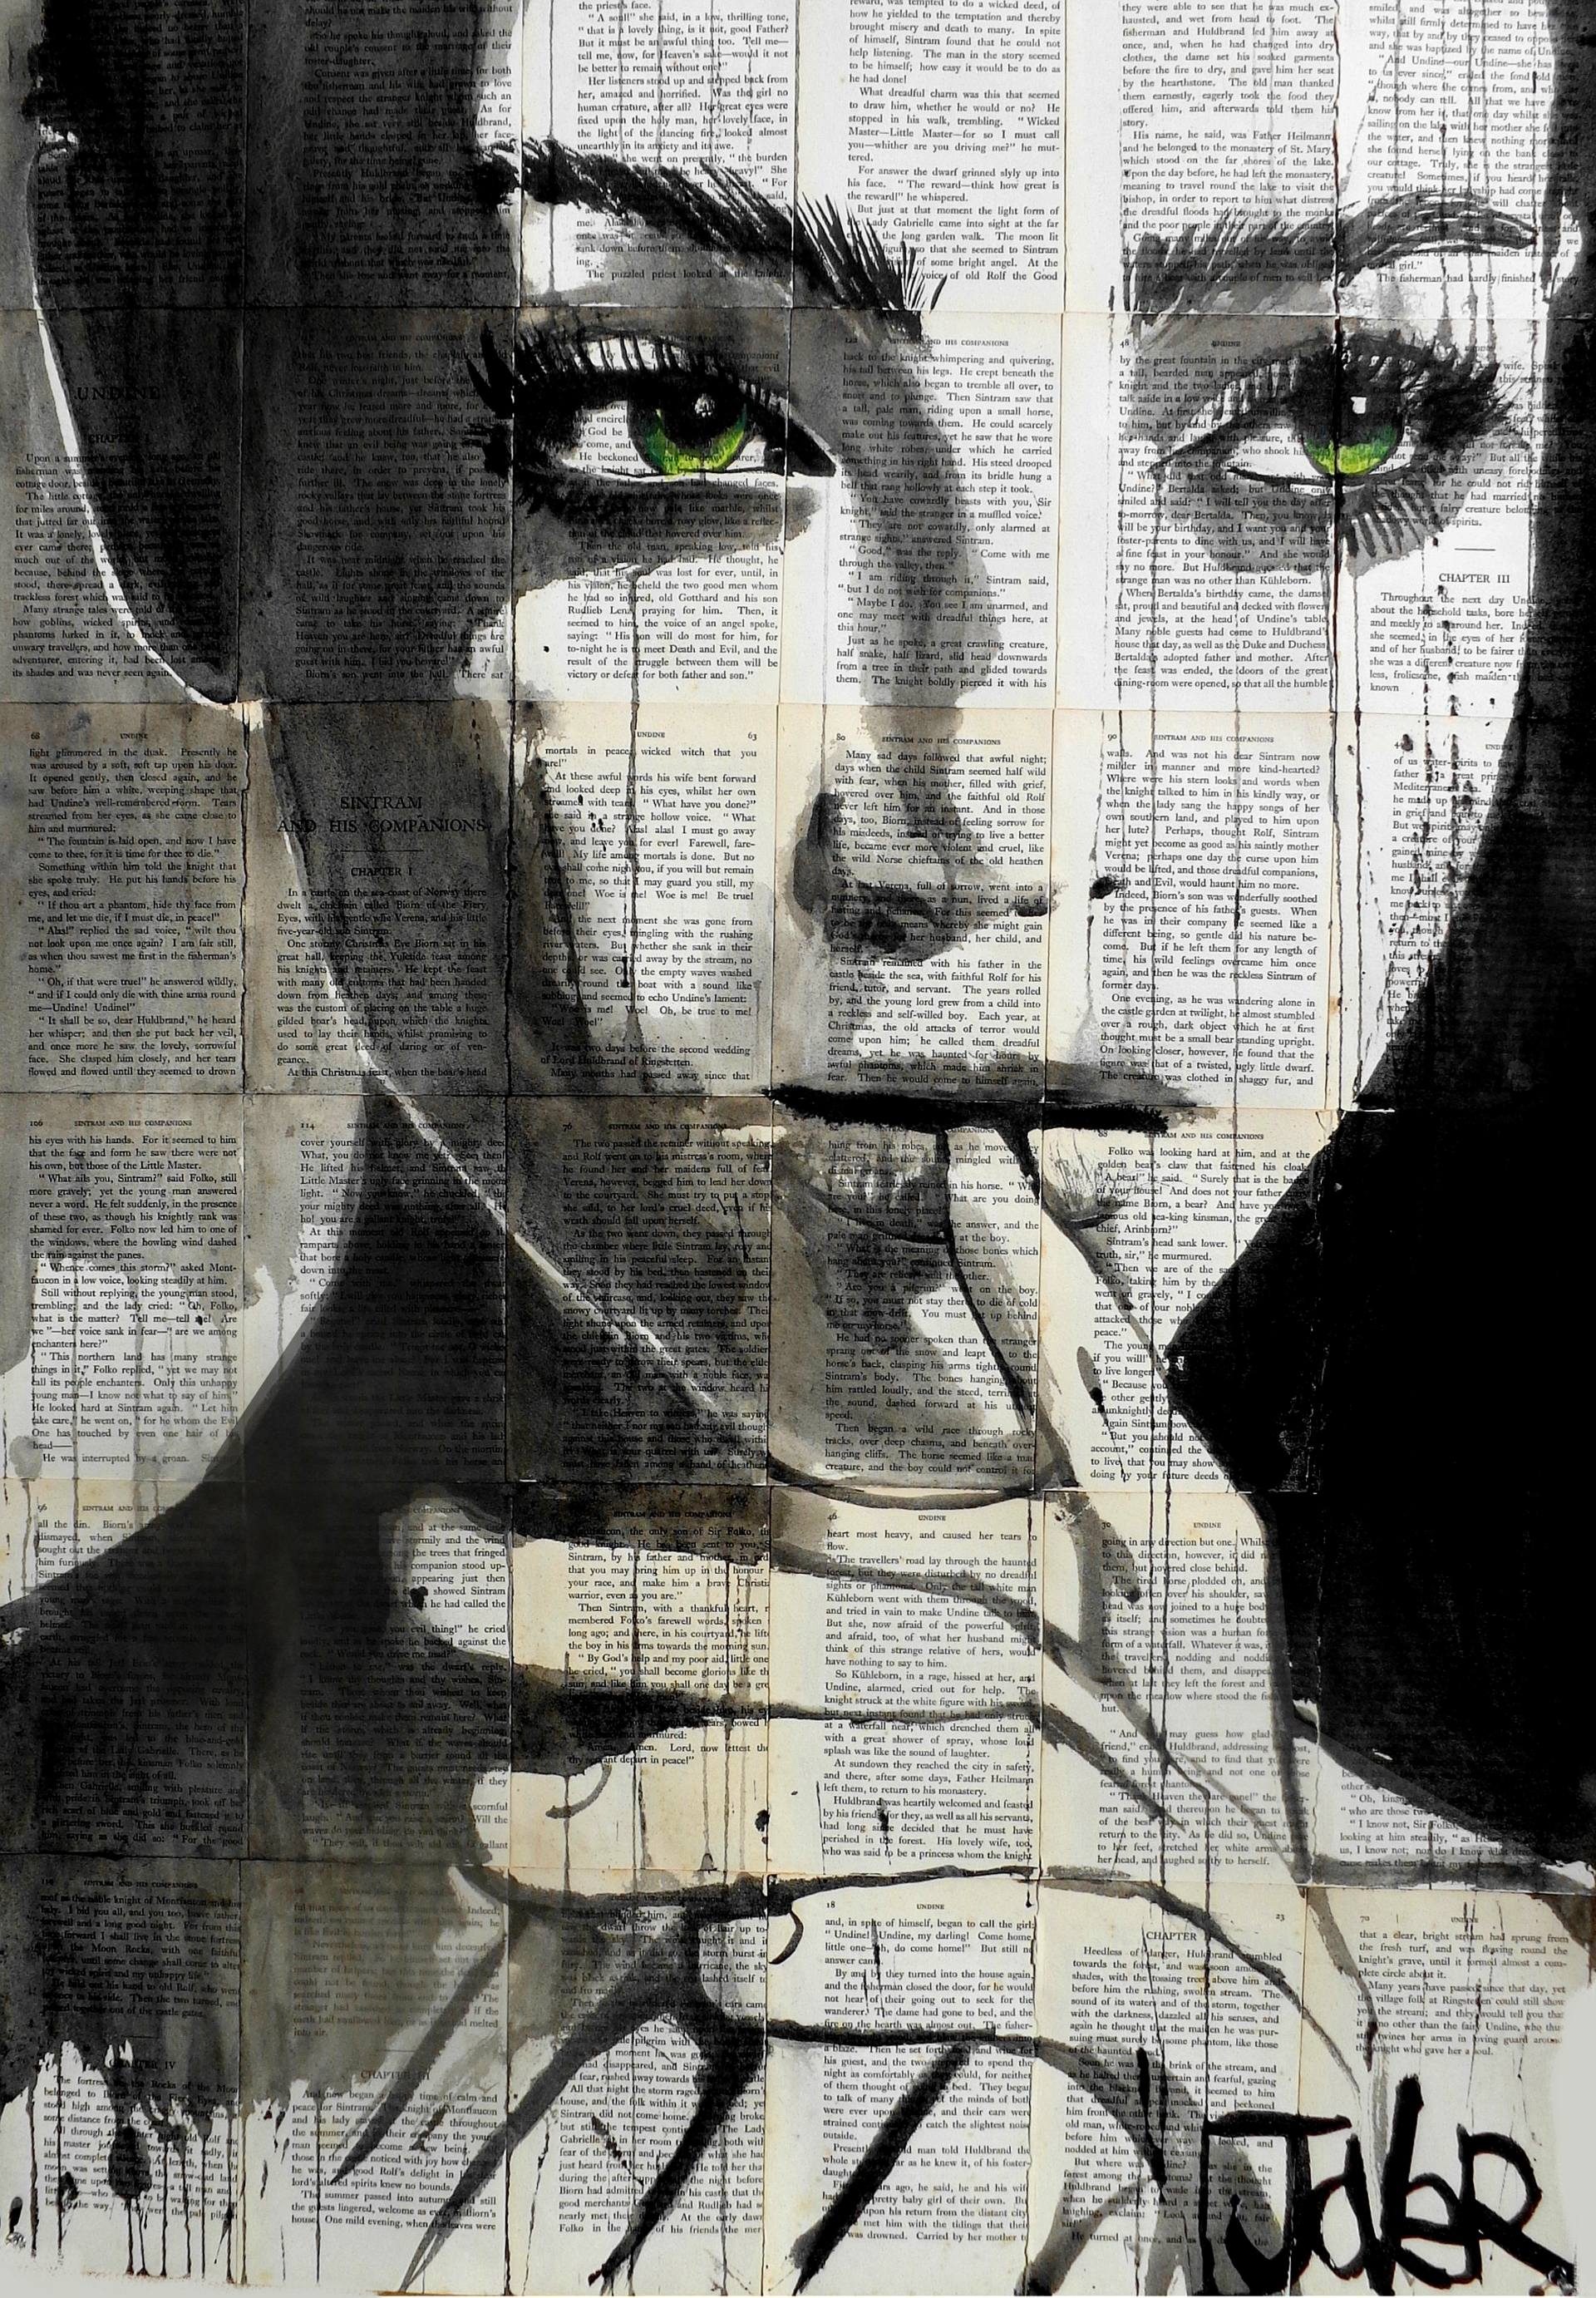 Drawn women australian Prints JOVER Collage Undine by